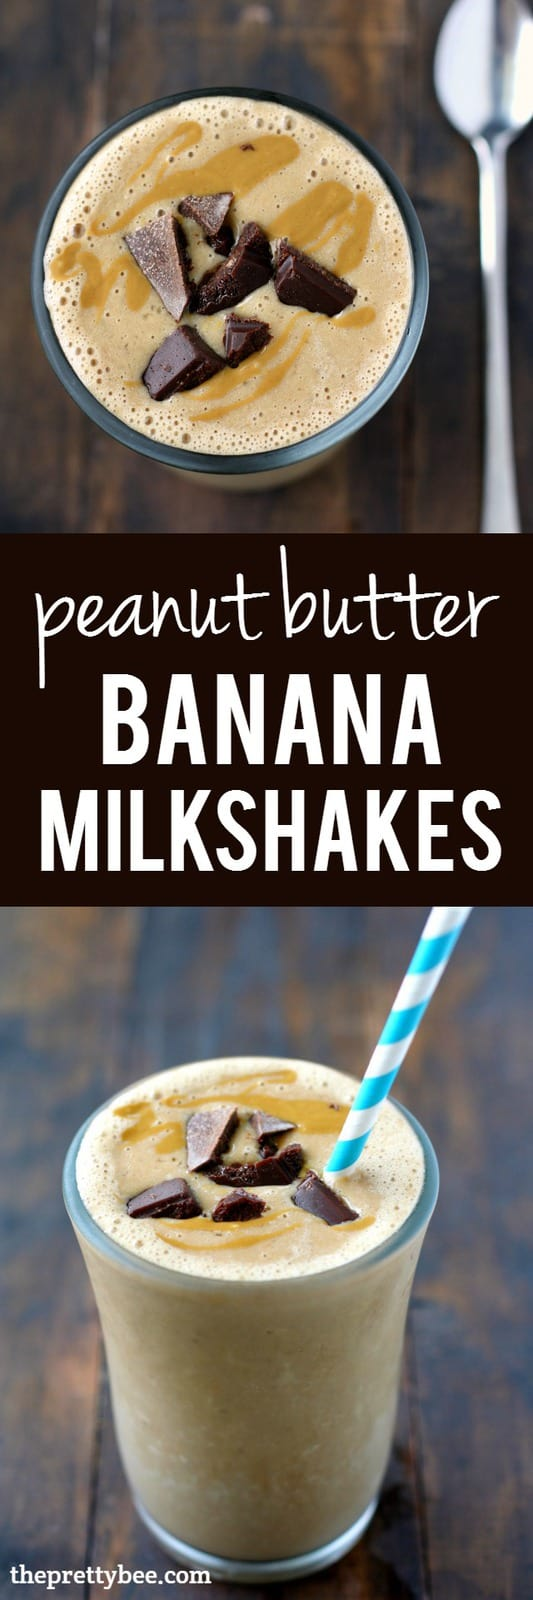 Dairy free and delicious - these peanut butter banana milkshakes are a great breakfast or dessert!